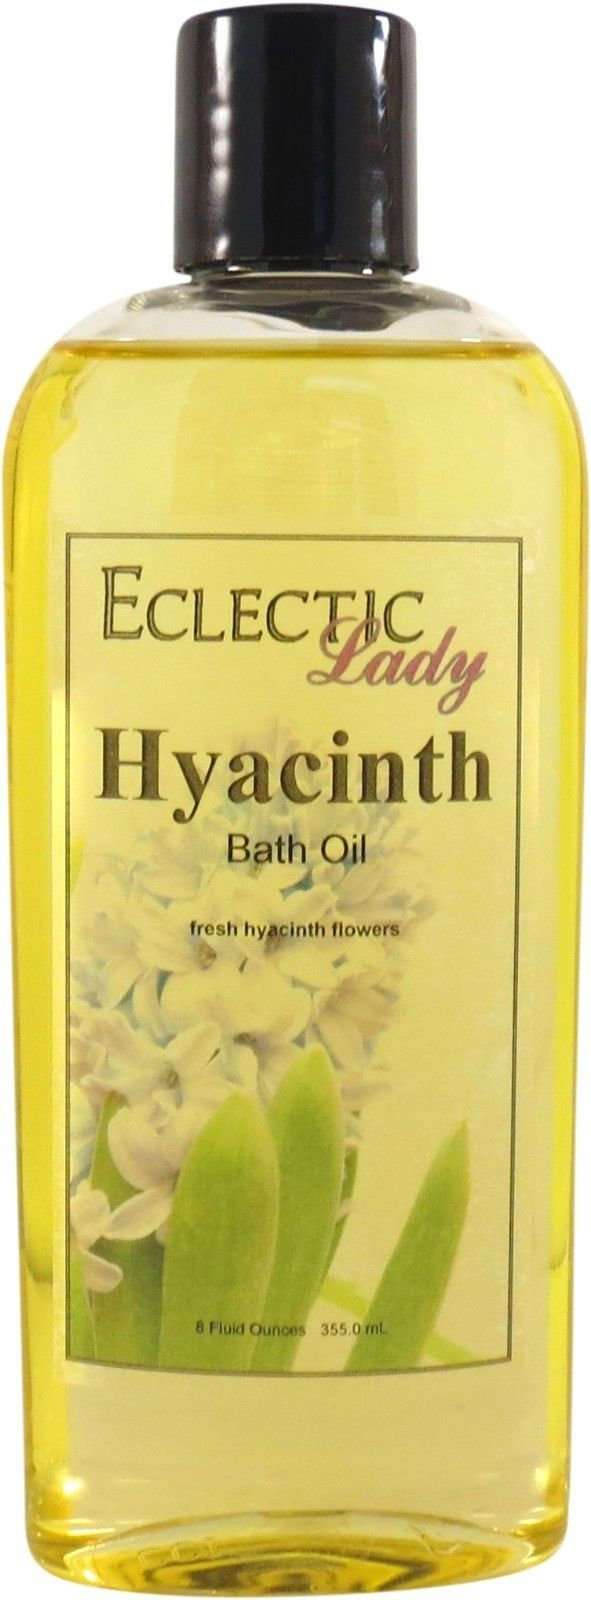 Hyacinth Bath Oil